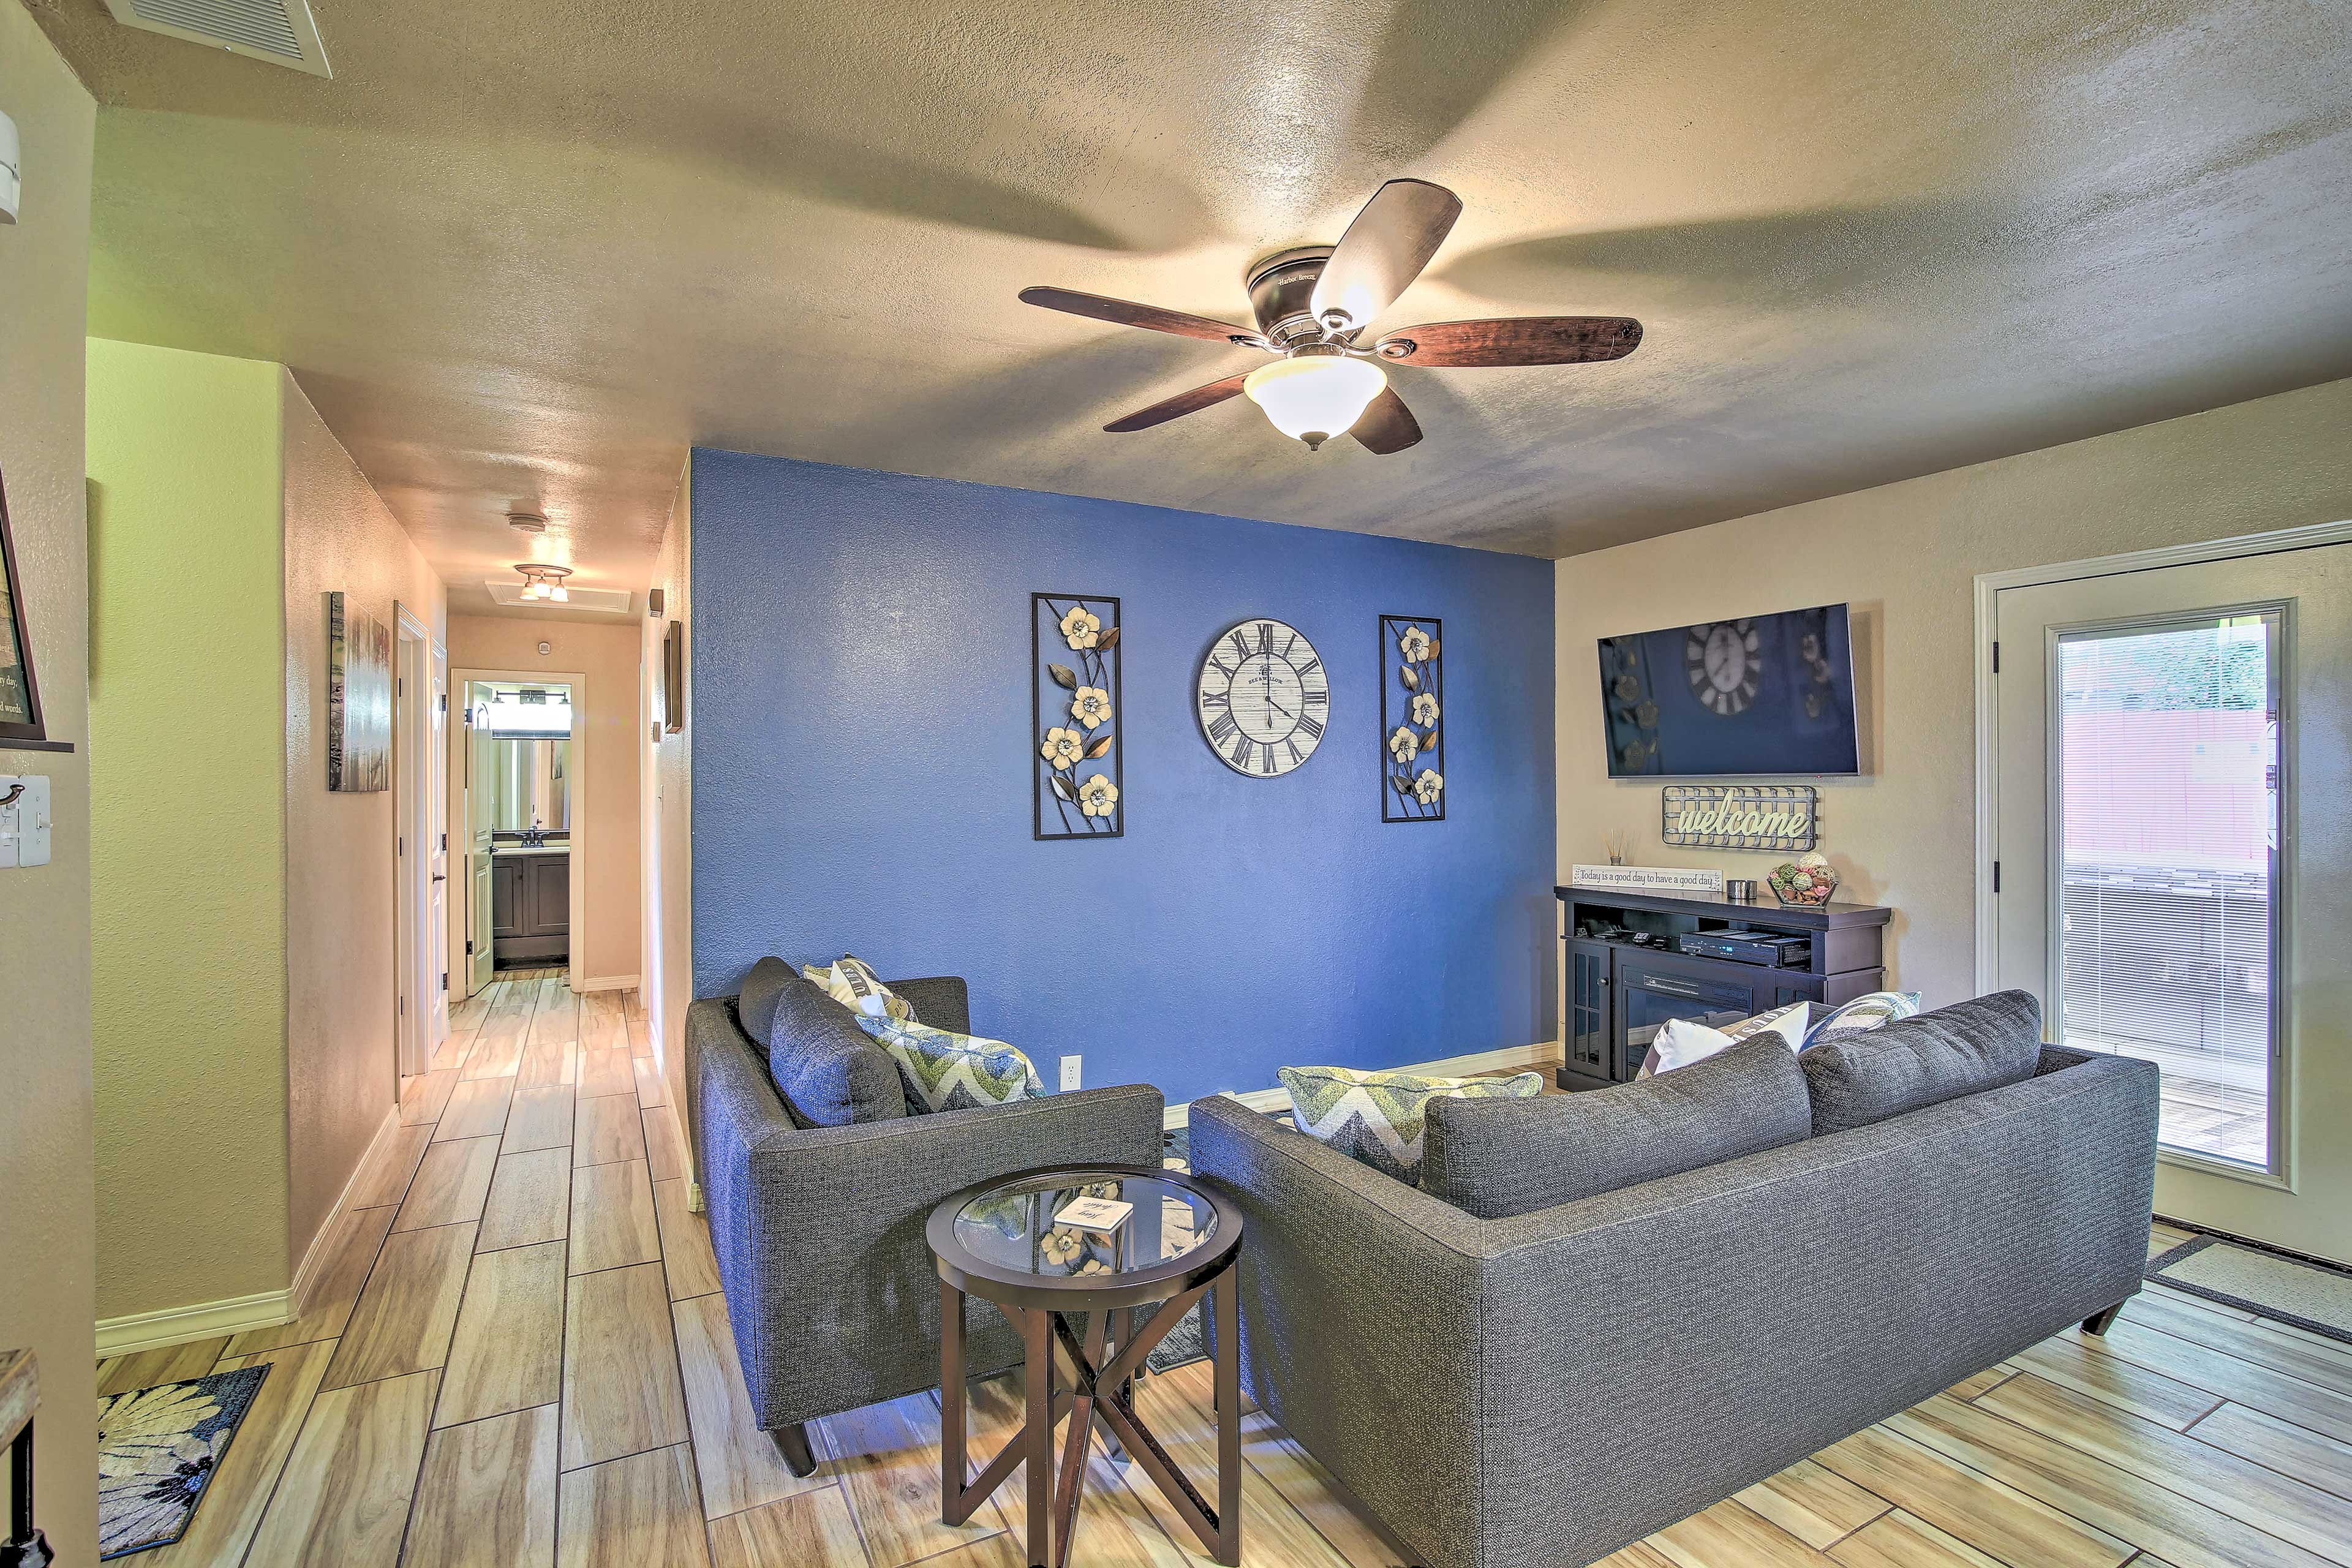 The vacation rental home boasts central A/C.